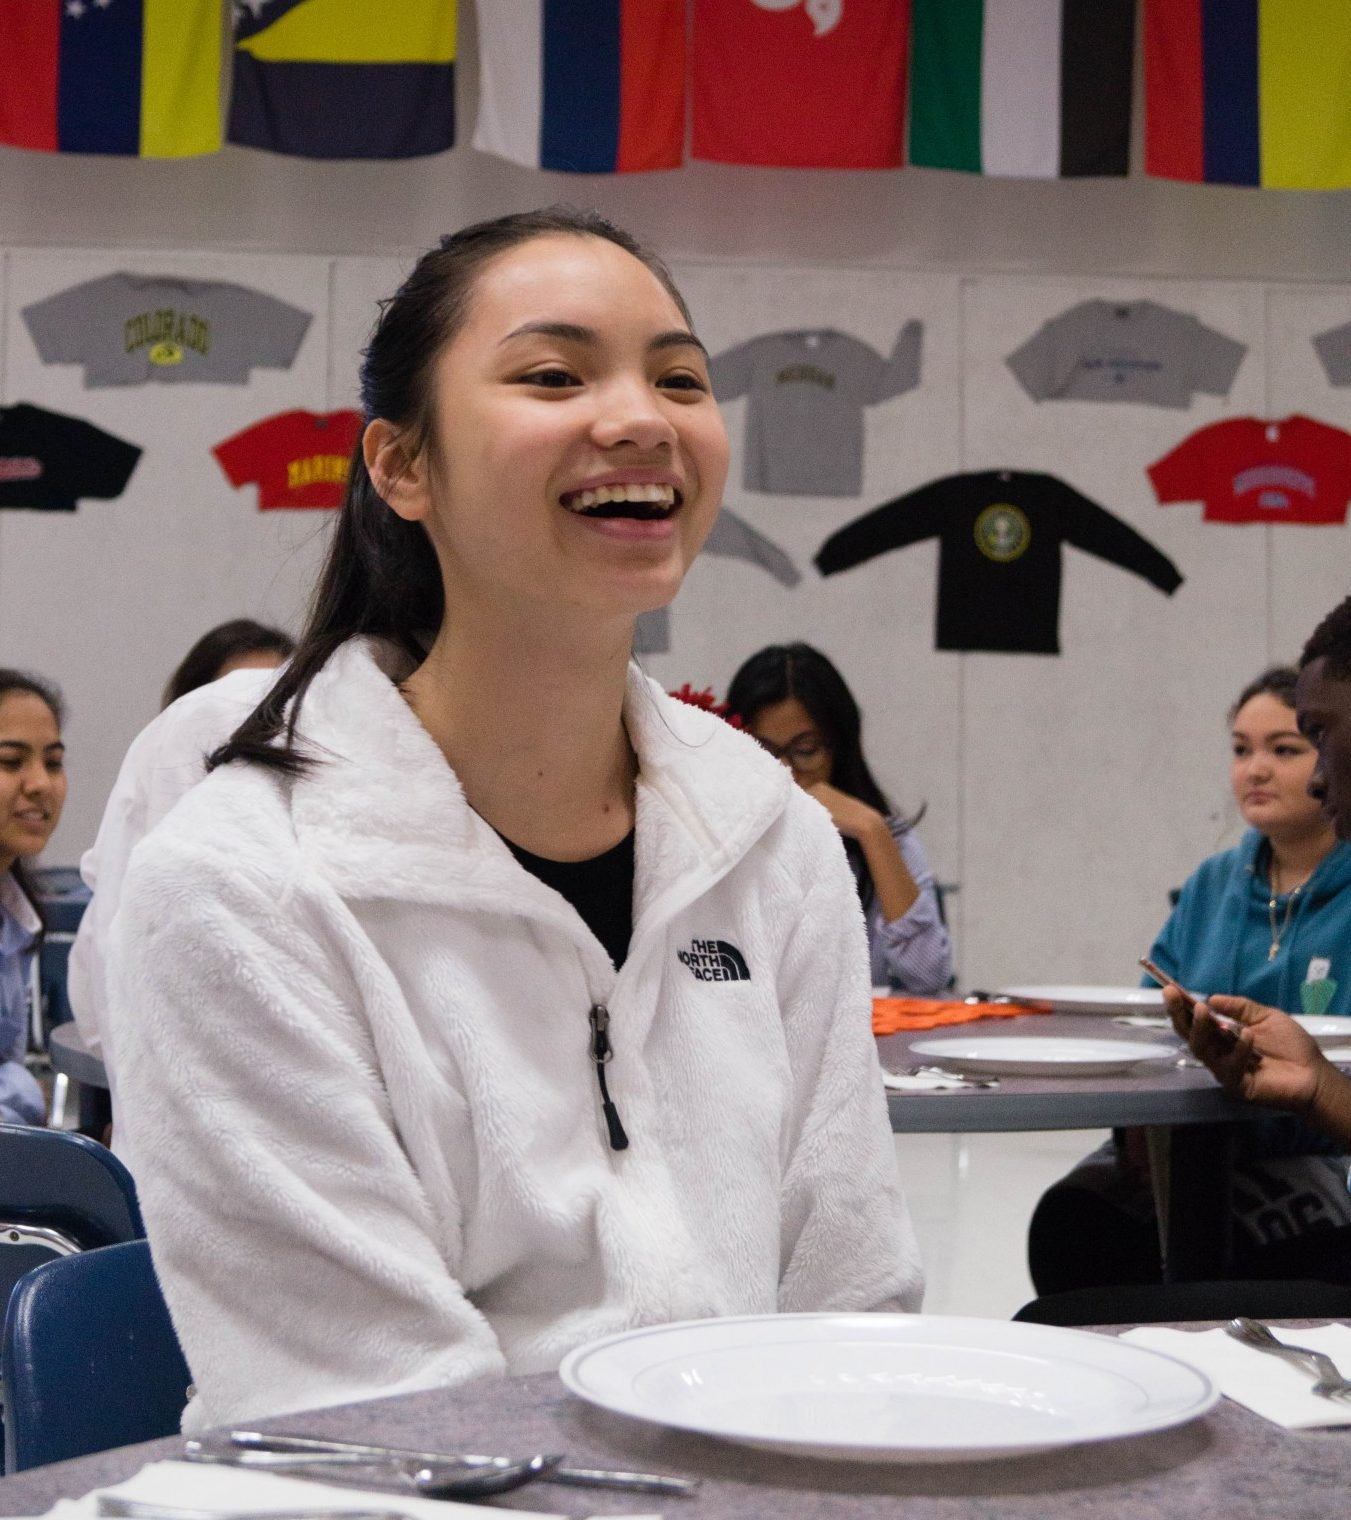 Vi Le (12) laughs at a joke made at the table as she converses with others at the FBLA Eating Workshop.